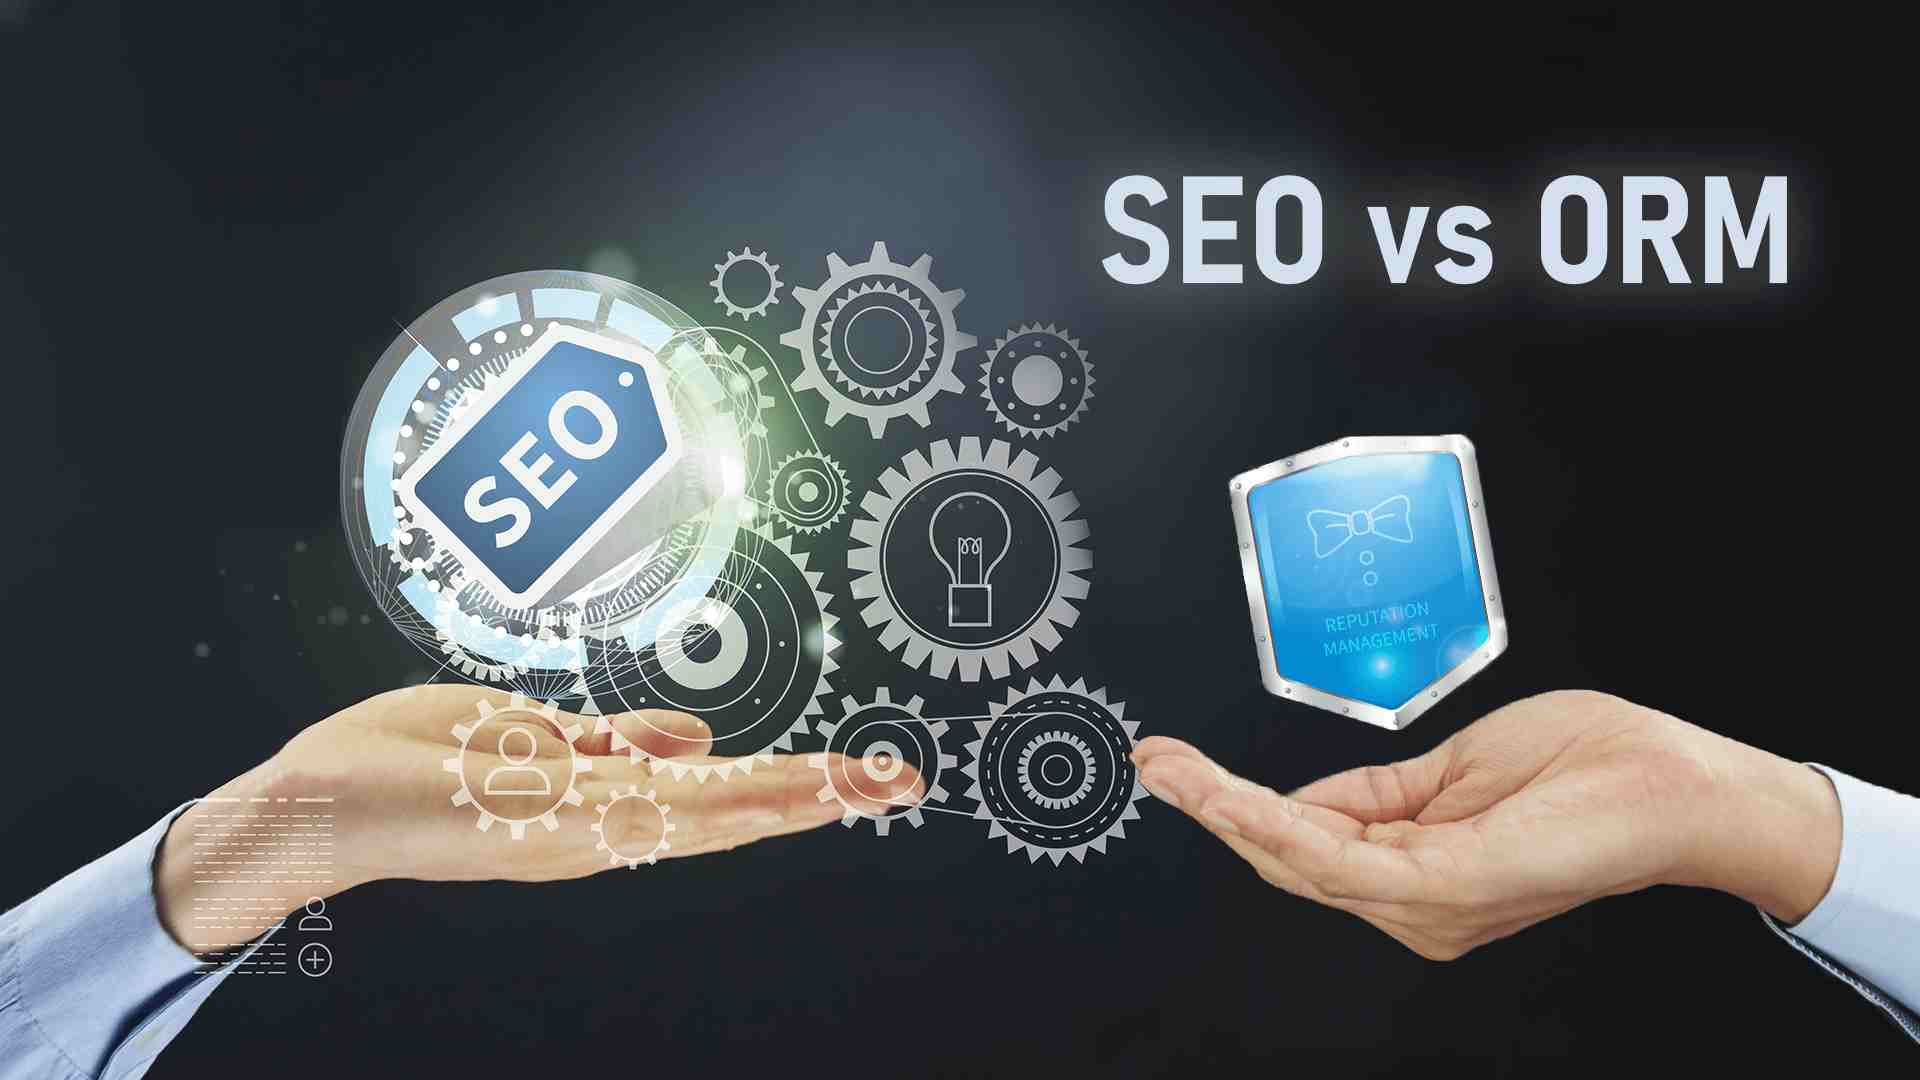 SEO vs. Online Reputation Management (ORM)- What is the difference?